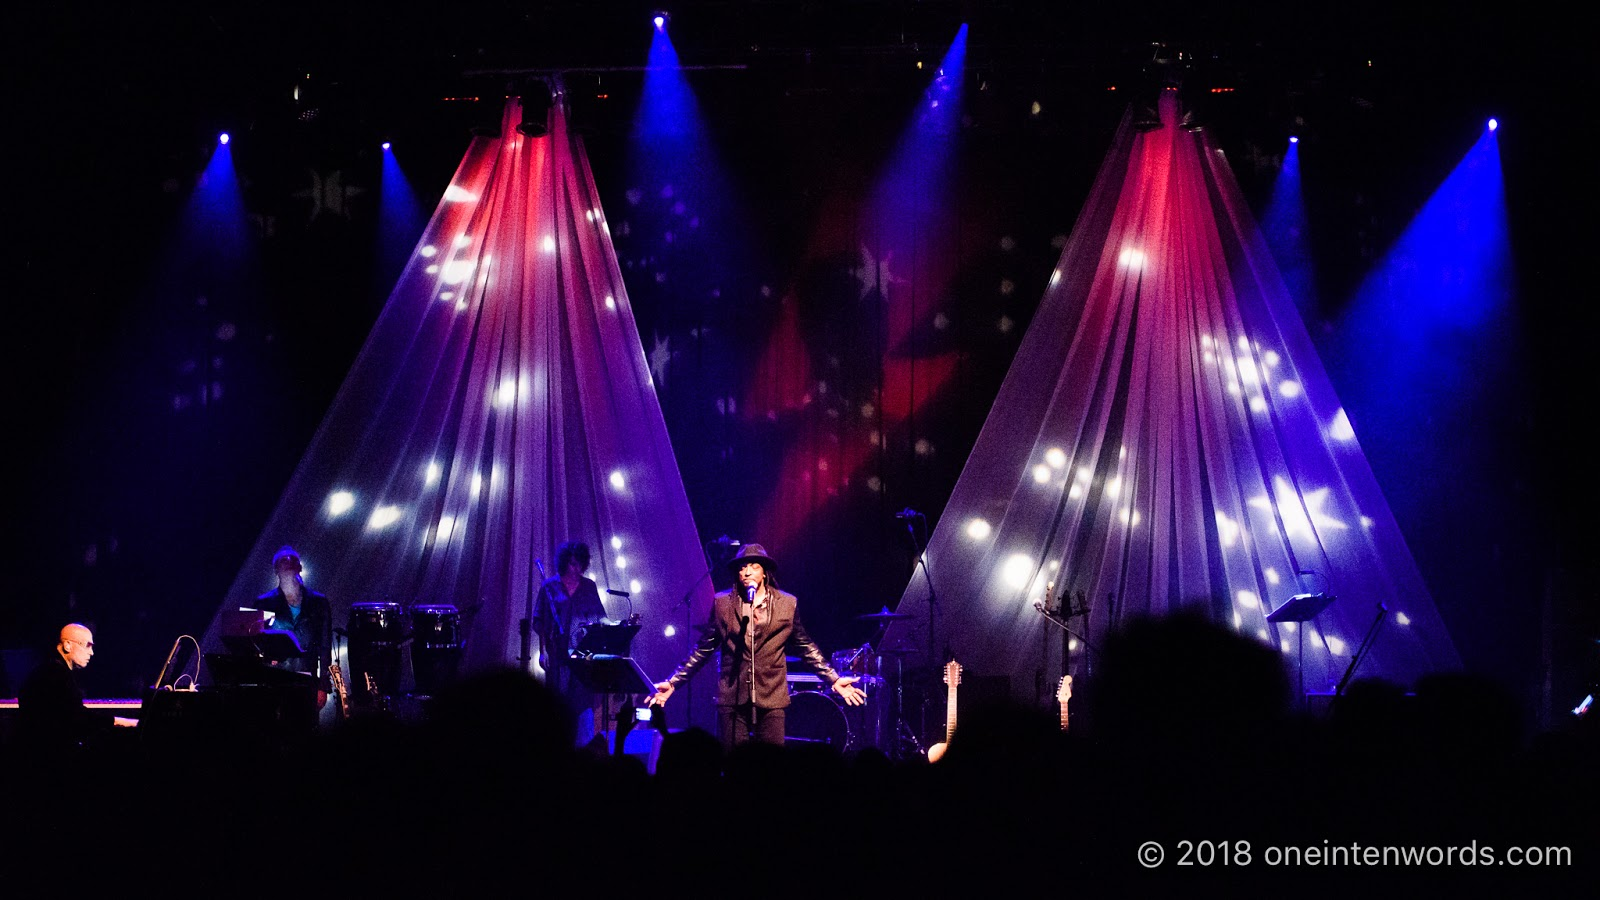 Celebrating David Bowie at The Danforth Music Hall - Concert Photos